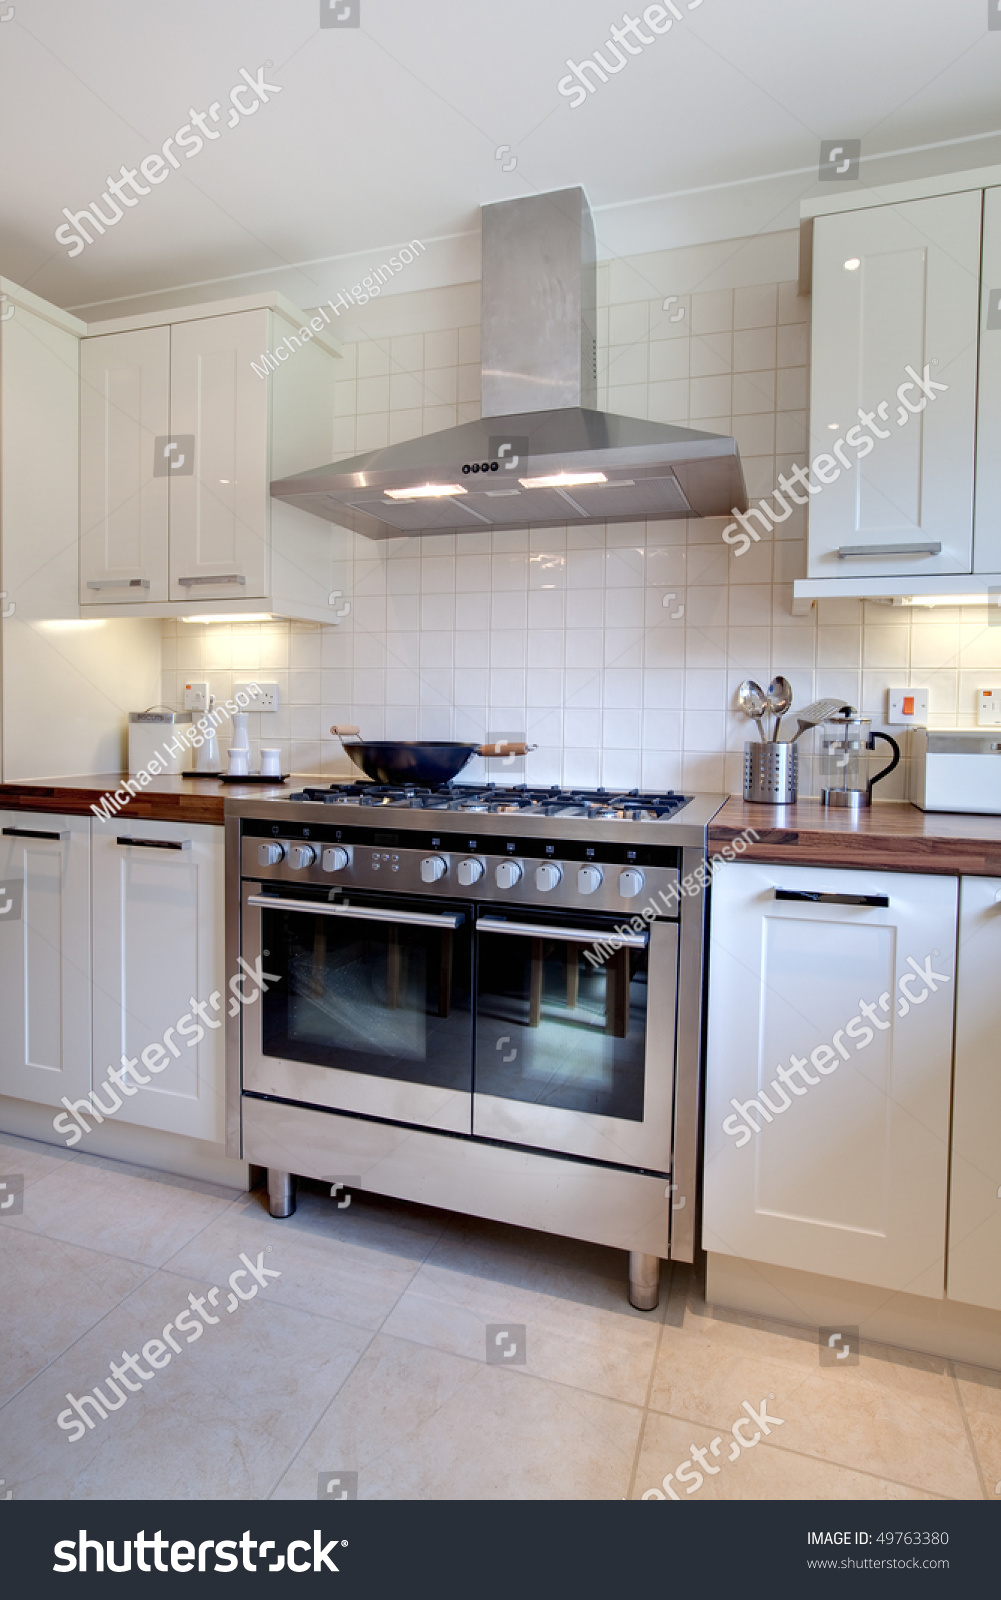 Cooker In Kitchen ~ Modern kitchen containing range style stainless stock